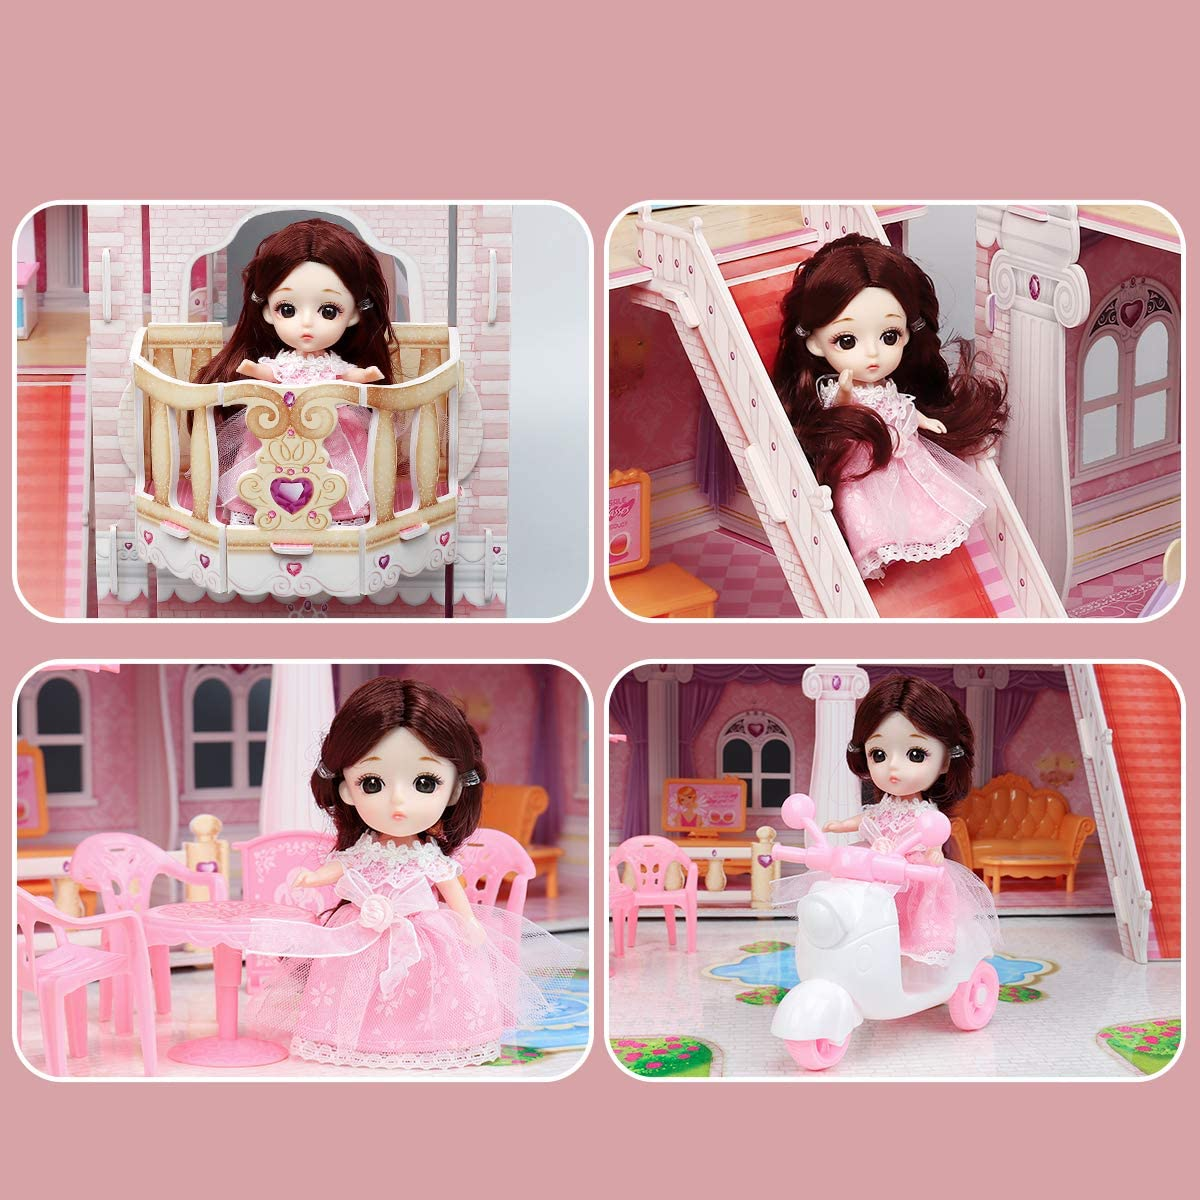 Height 40.5 Length 38 Width 22.5 for 3-6 Year Girls 4 Floors Large Doll House Toy with 49pcs Furniture Accessories and Lights Dollhouse Toy Sets 4-story//10-rooms